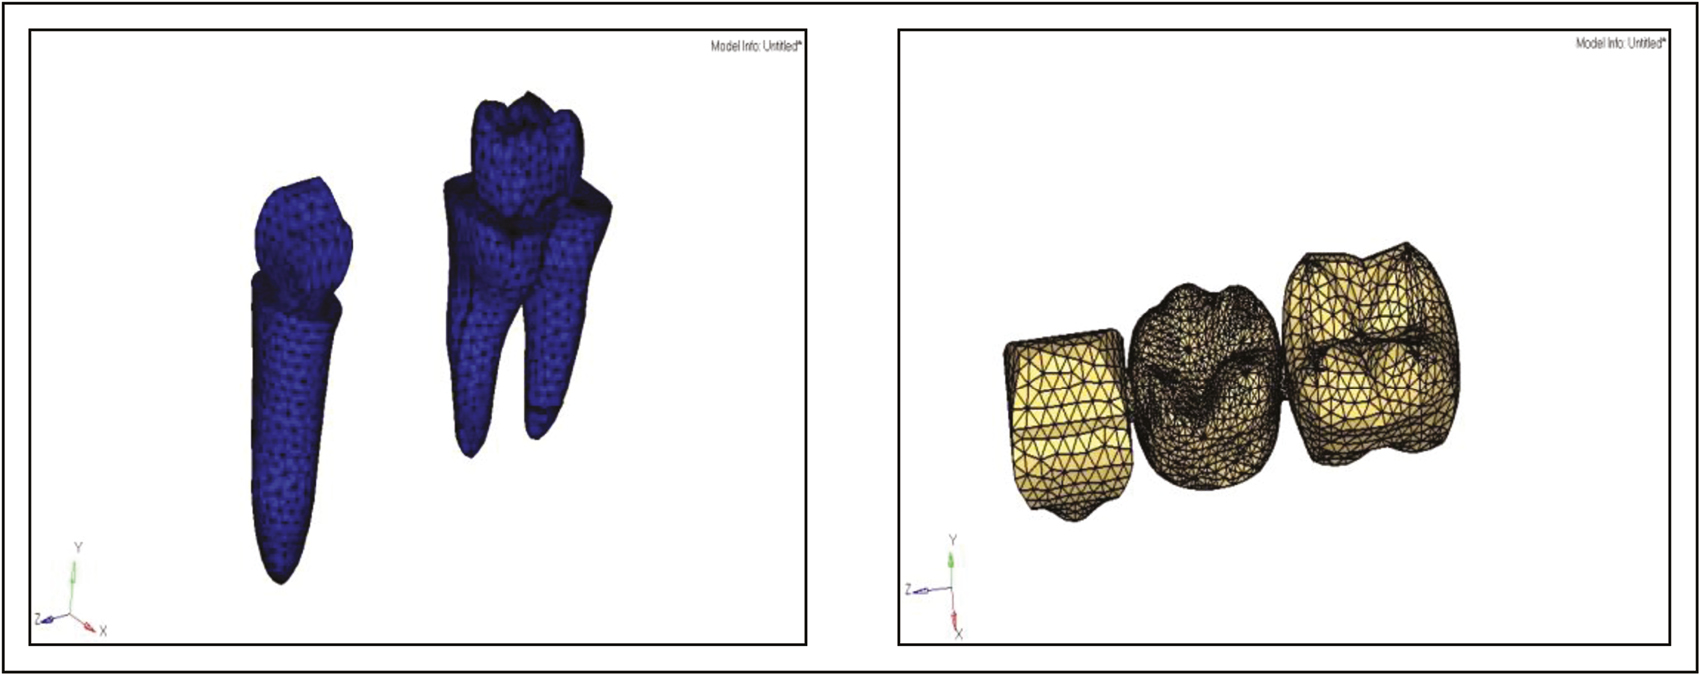 Figure 4: Modeling of abutment teeth and supra-structure